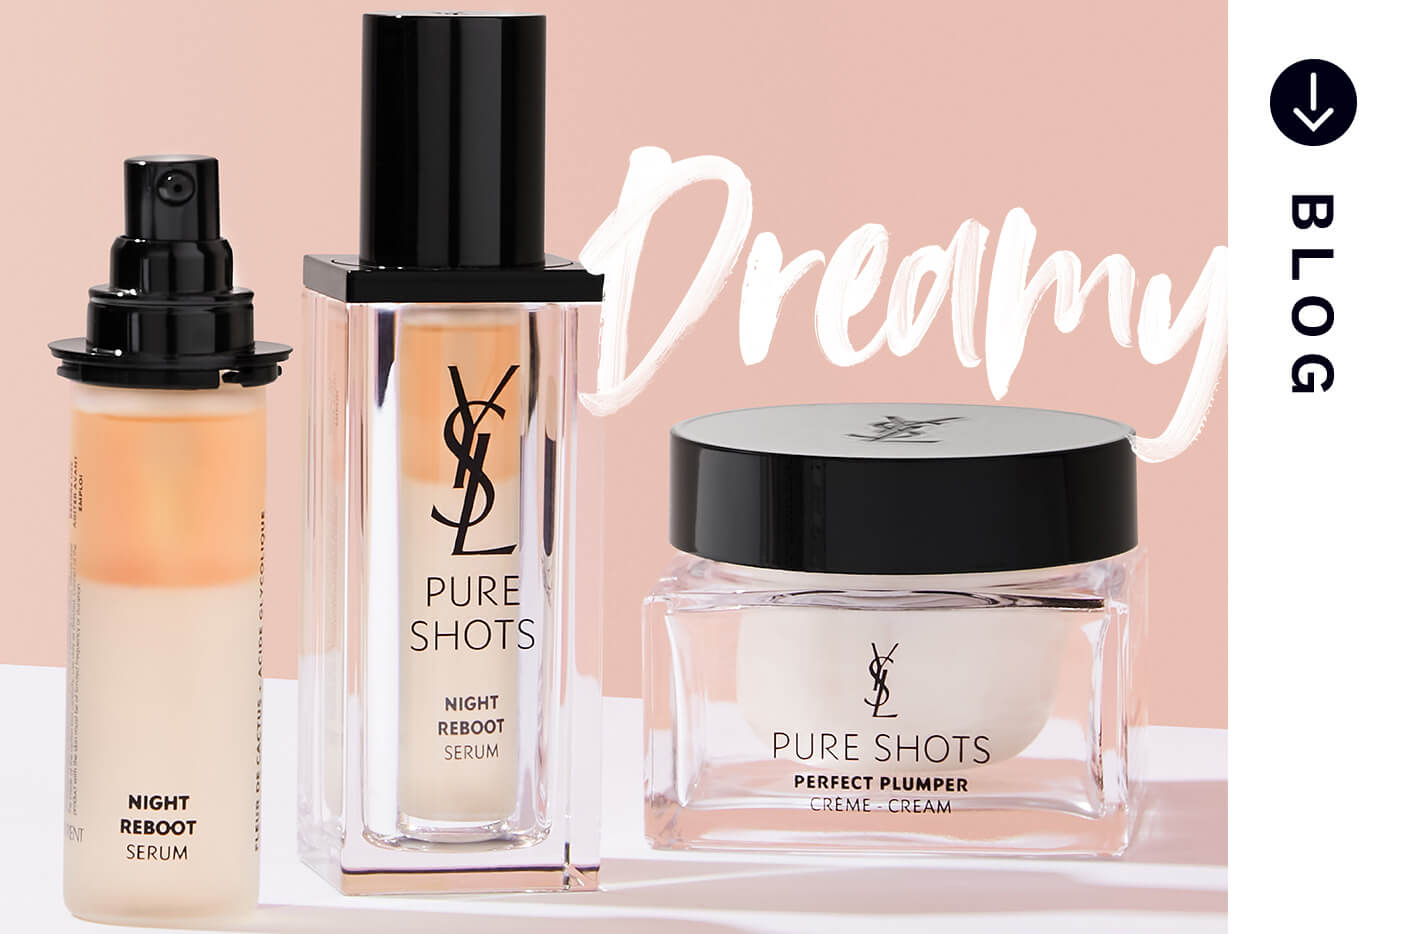 Premium beauty routine from YSL for the luxurious way to lookfantastic.